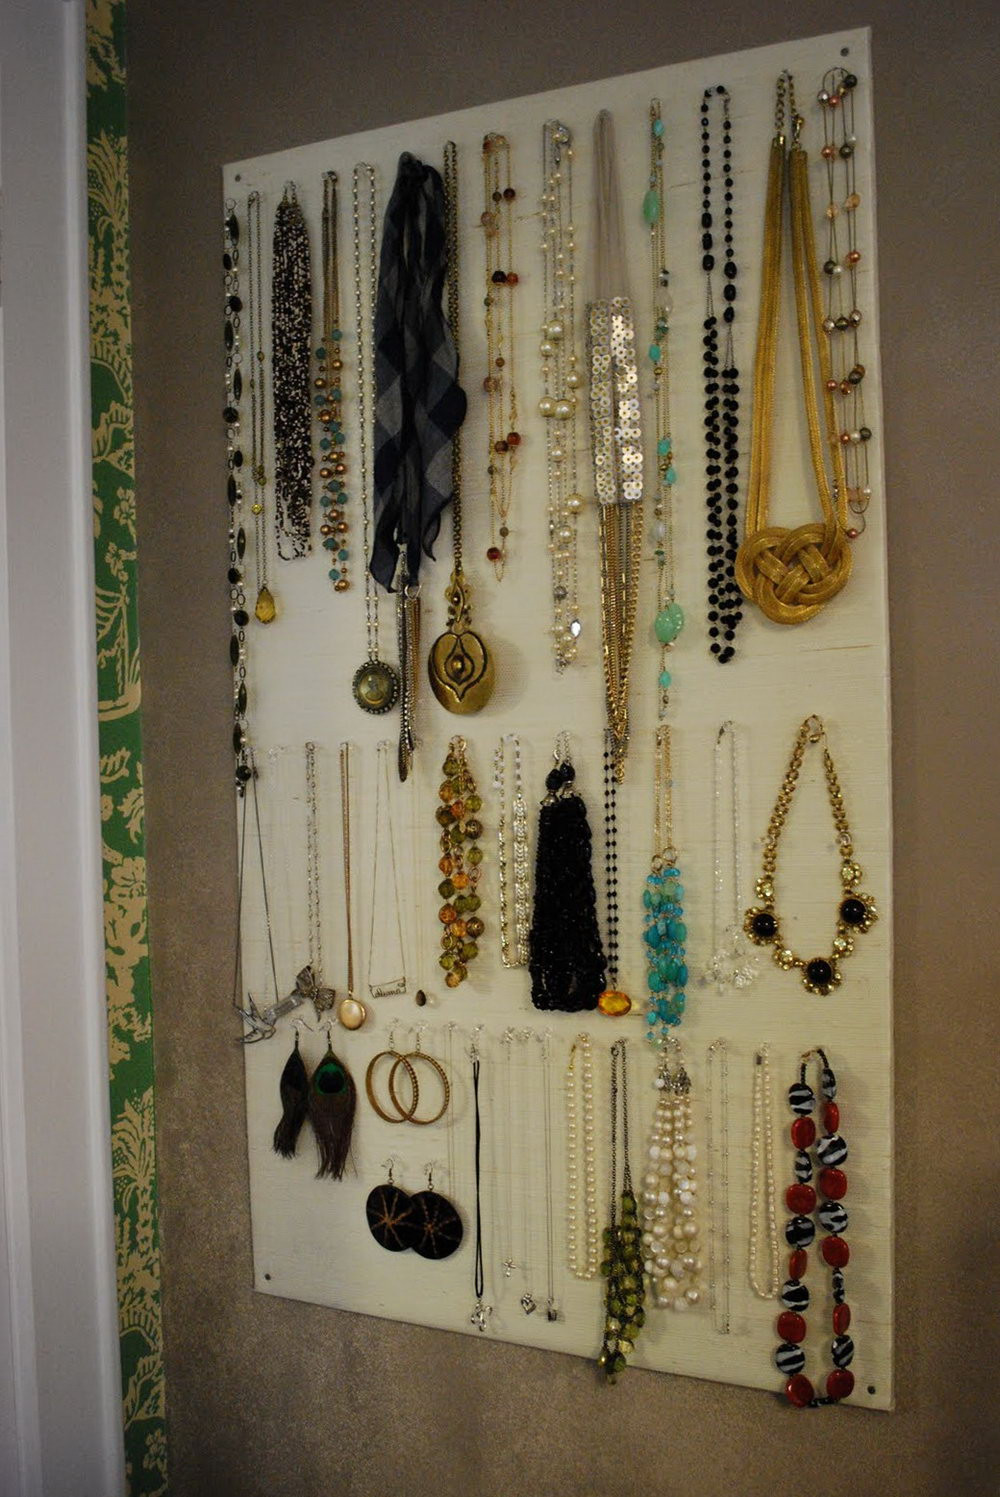 Best ideas about DIY Wall Jewelry Organizer . Save or Pin Diy Jewelry Organizer Wall Now.